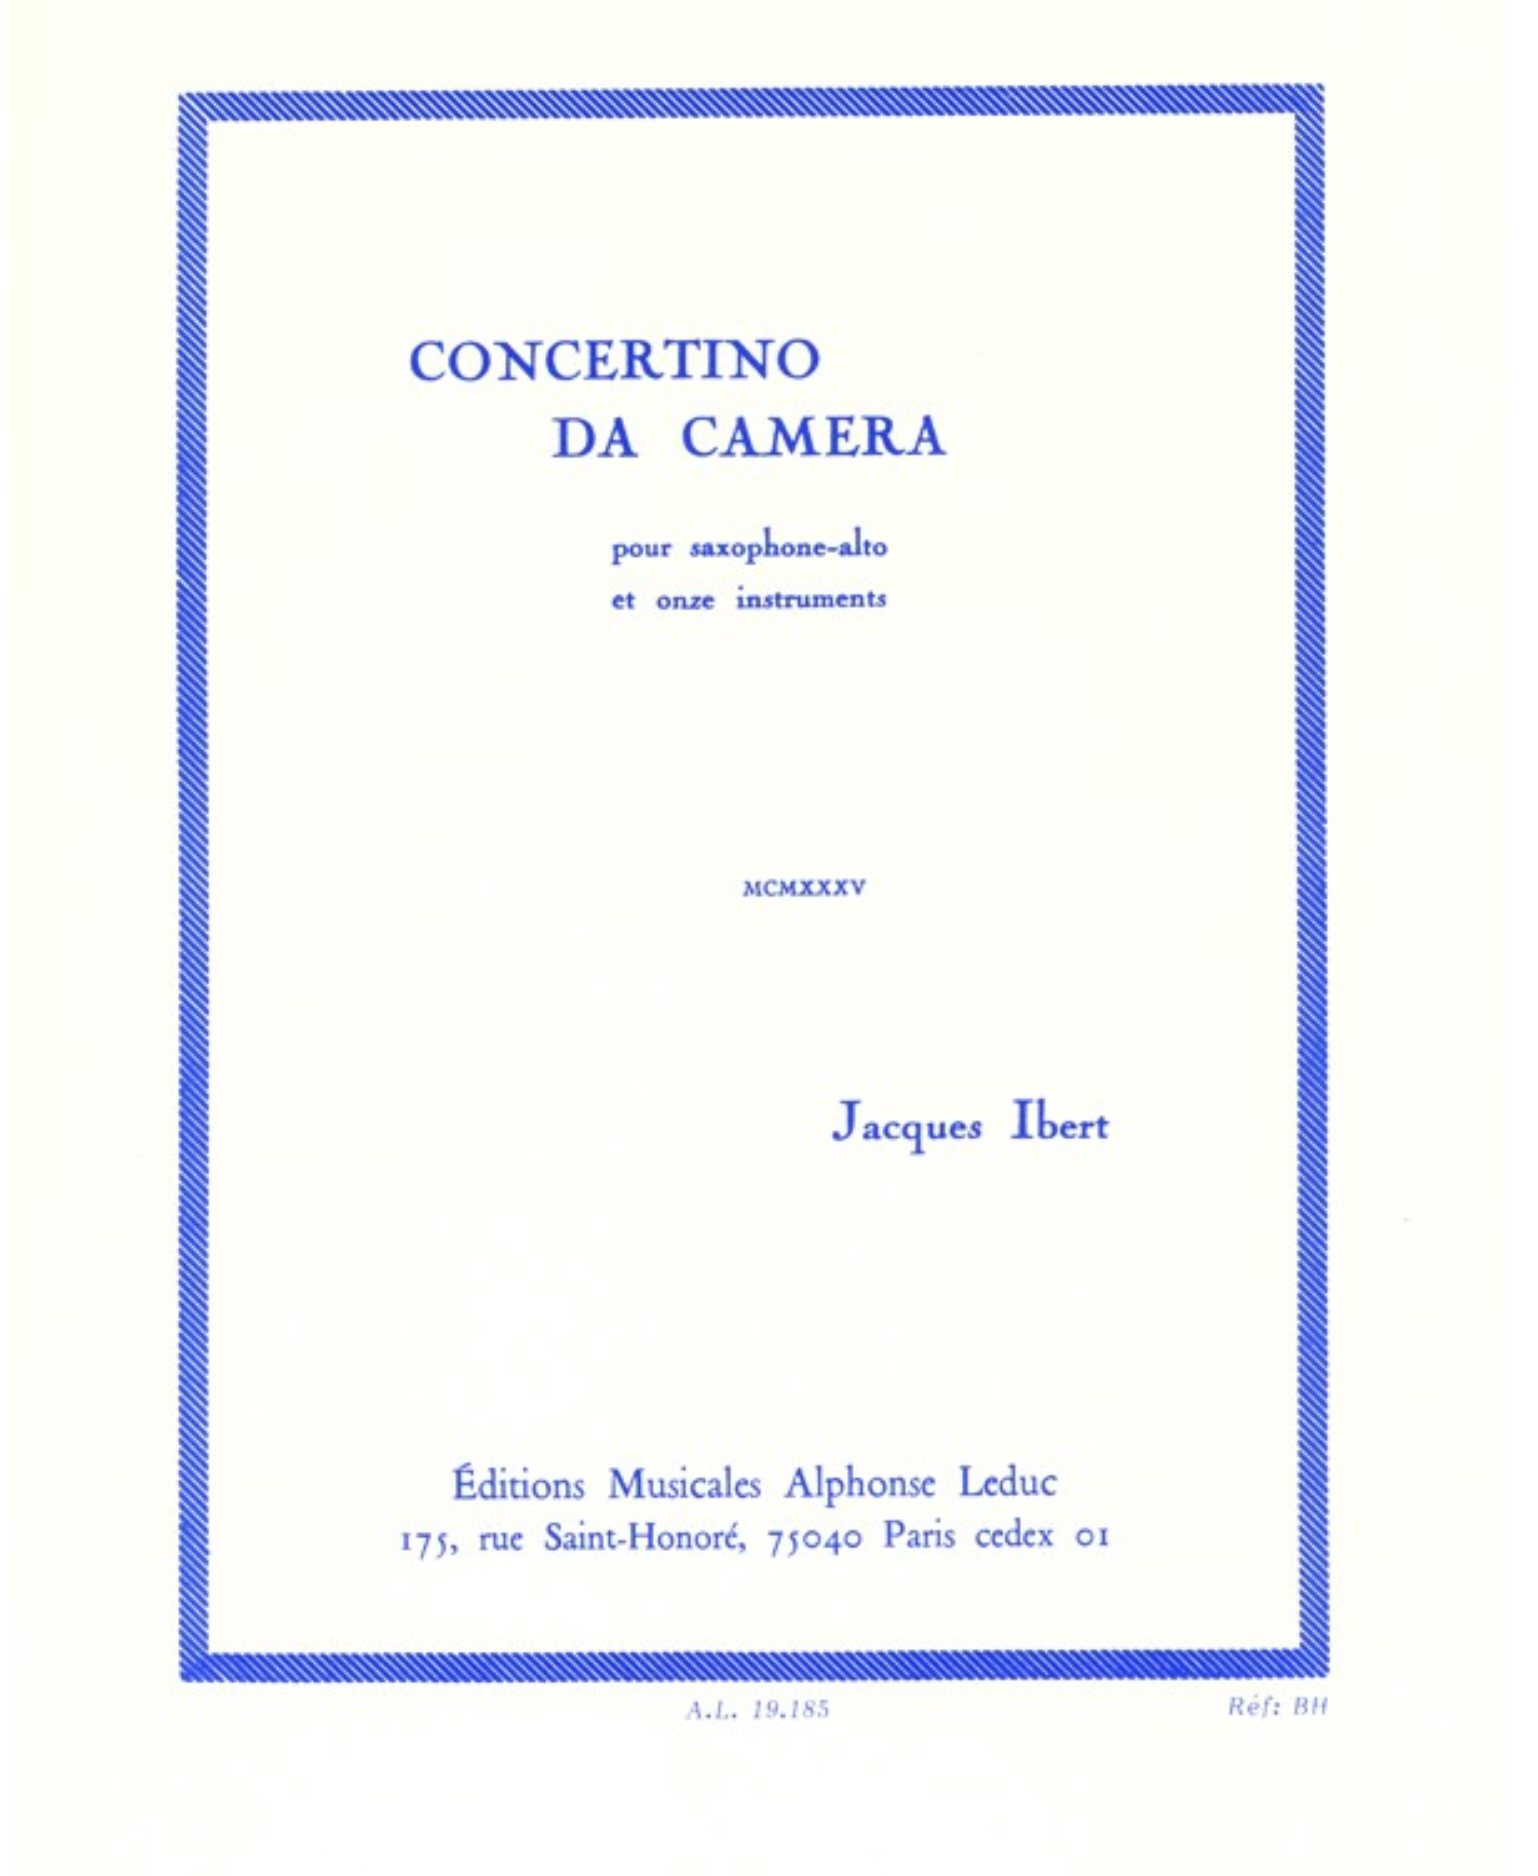 Concertino Da Camera by Jacques Ibert